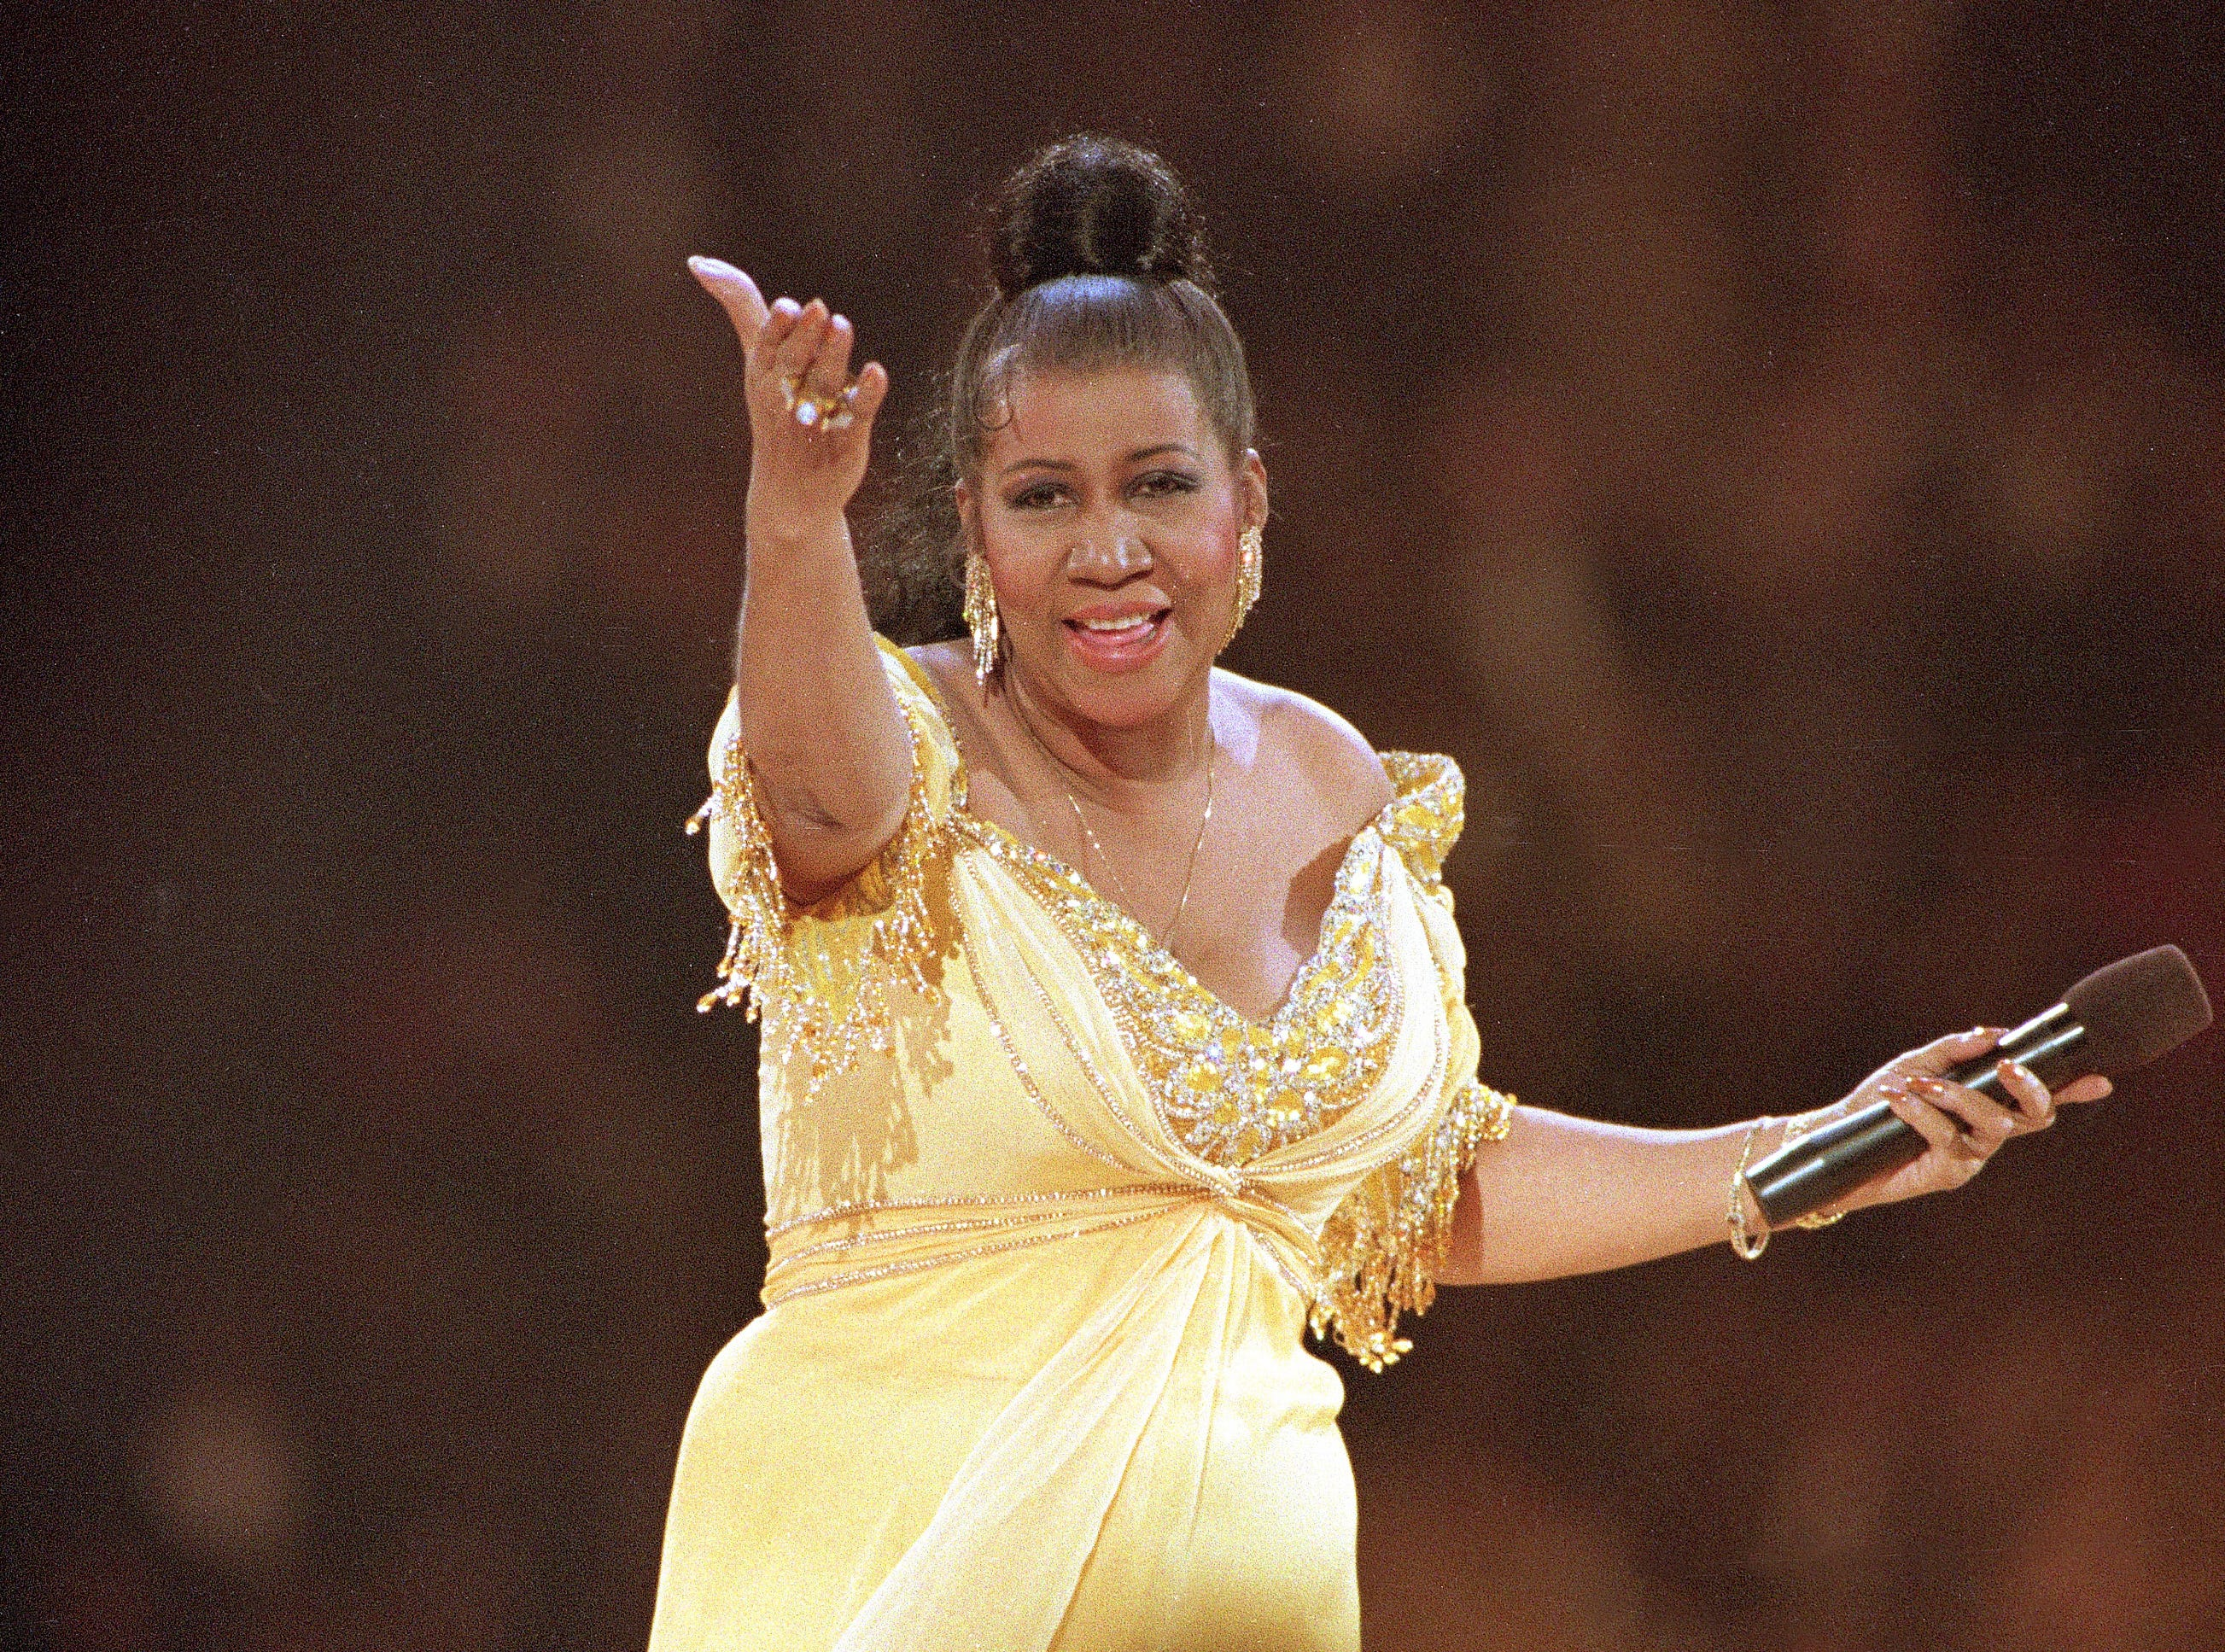 In this Jan. 19, 1993 file photo, singer Aretha Franklin performs at the inaugural gala for President Bill Clinton in Washington.